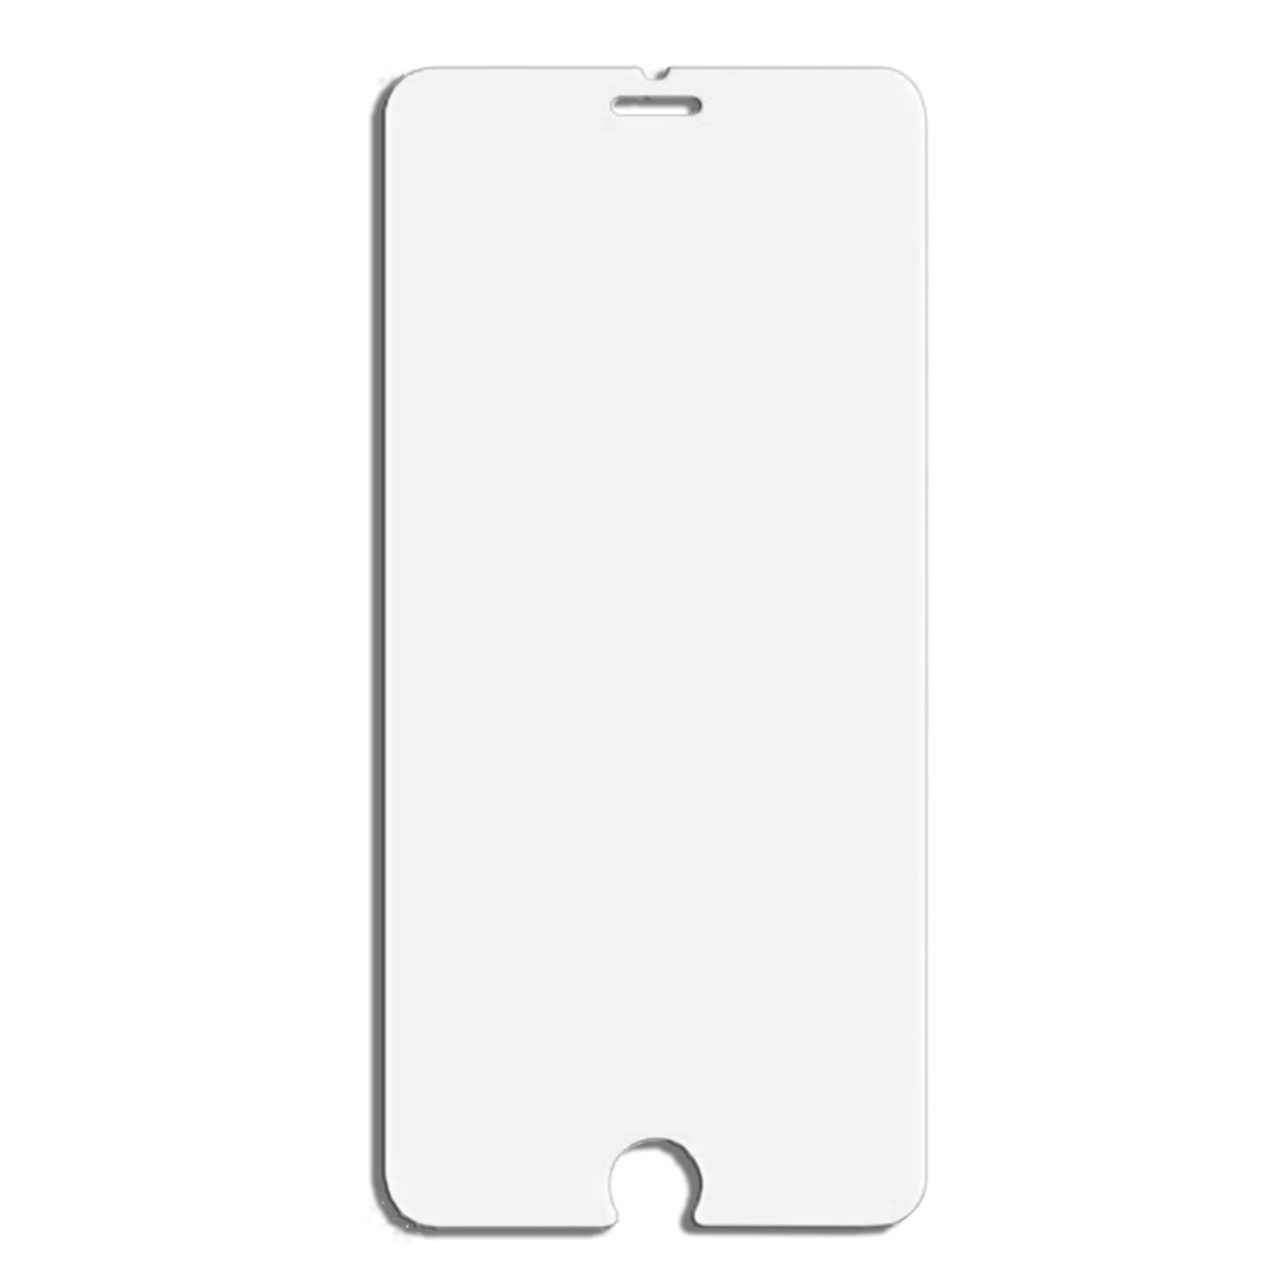 Soft Rubber Case For Iphone 6 6 Plus Tempered Glass Inc